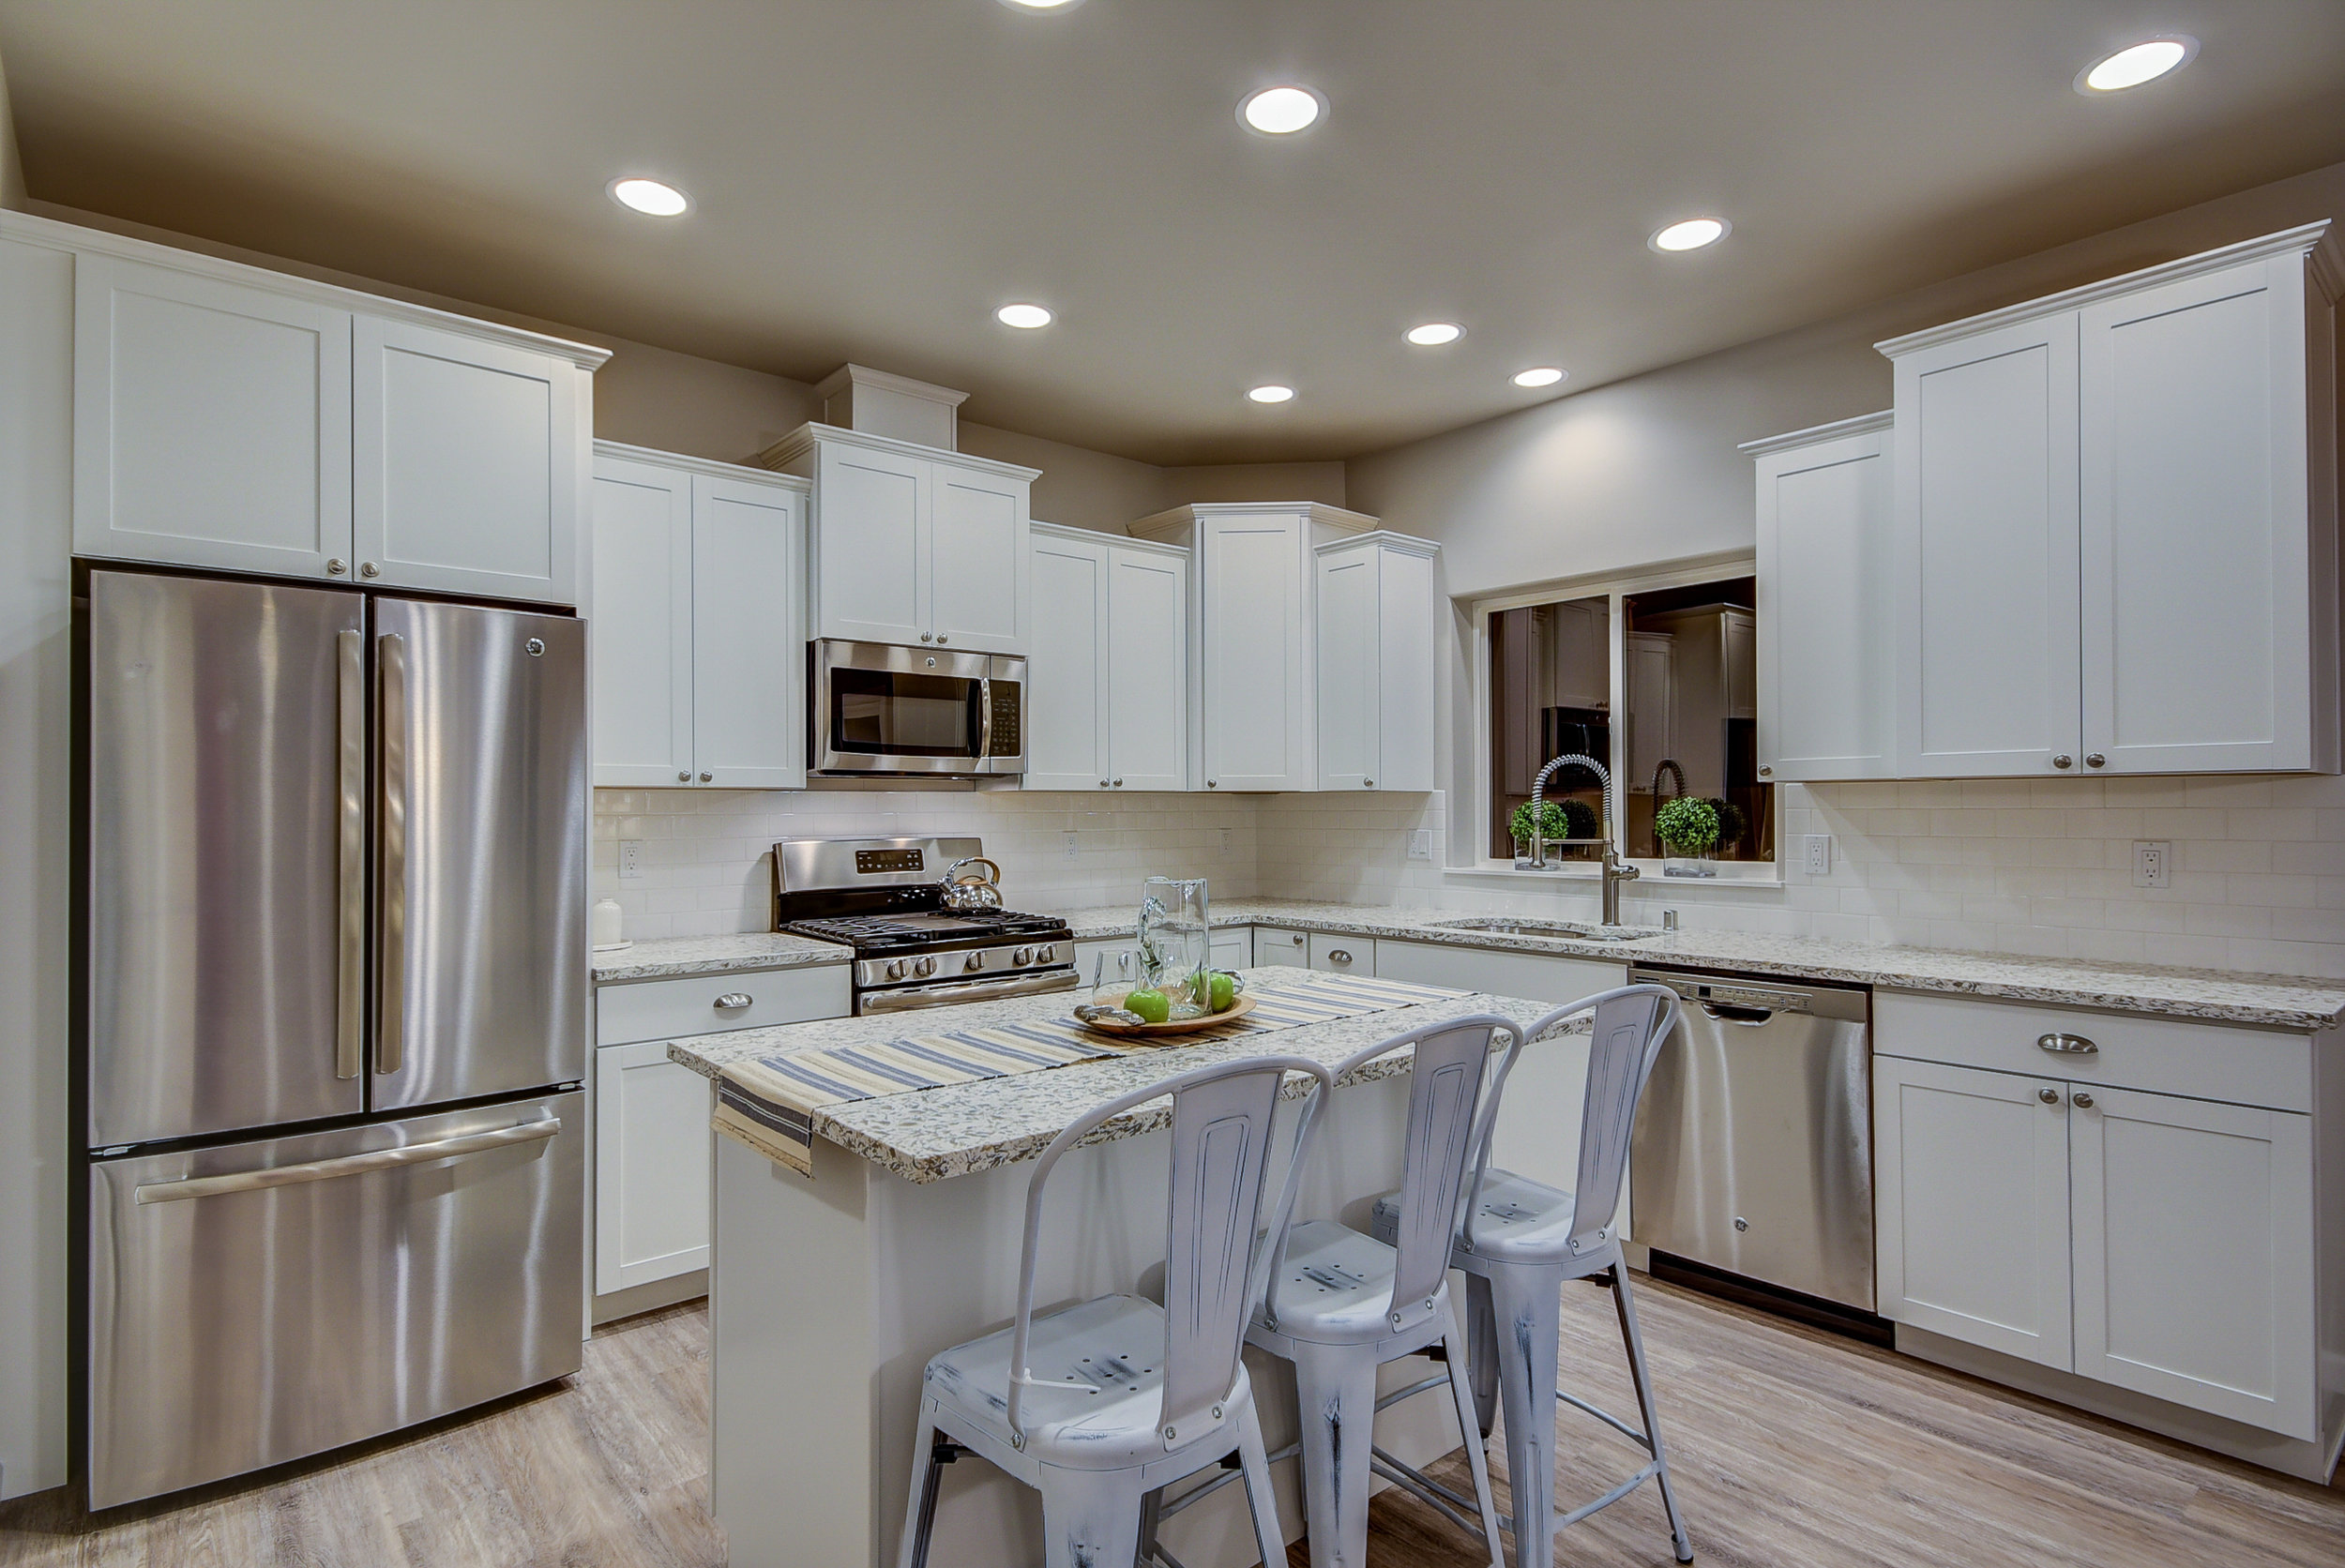 """Yes...this gorgeous kitchen raises the bar for a """"standard model"""" kitchen..It will be an oasis for sophisticated foodies............"""